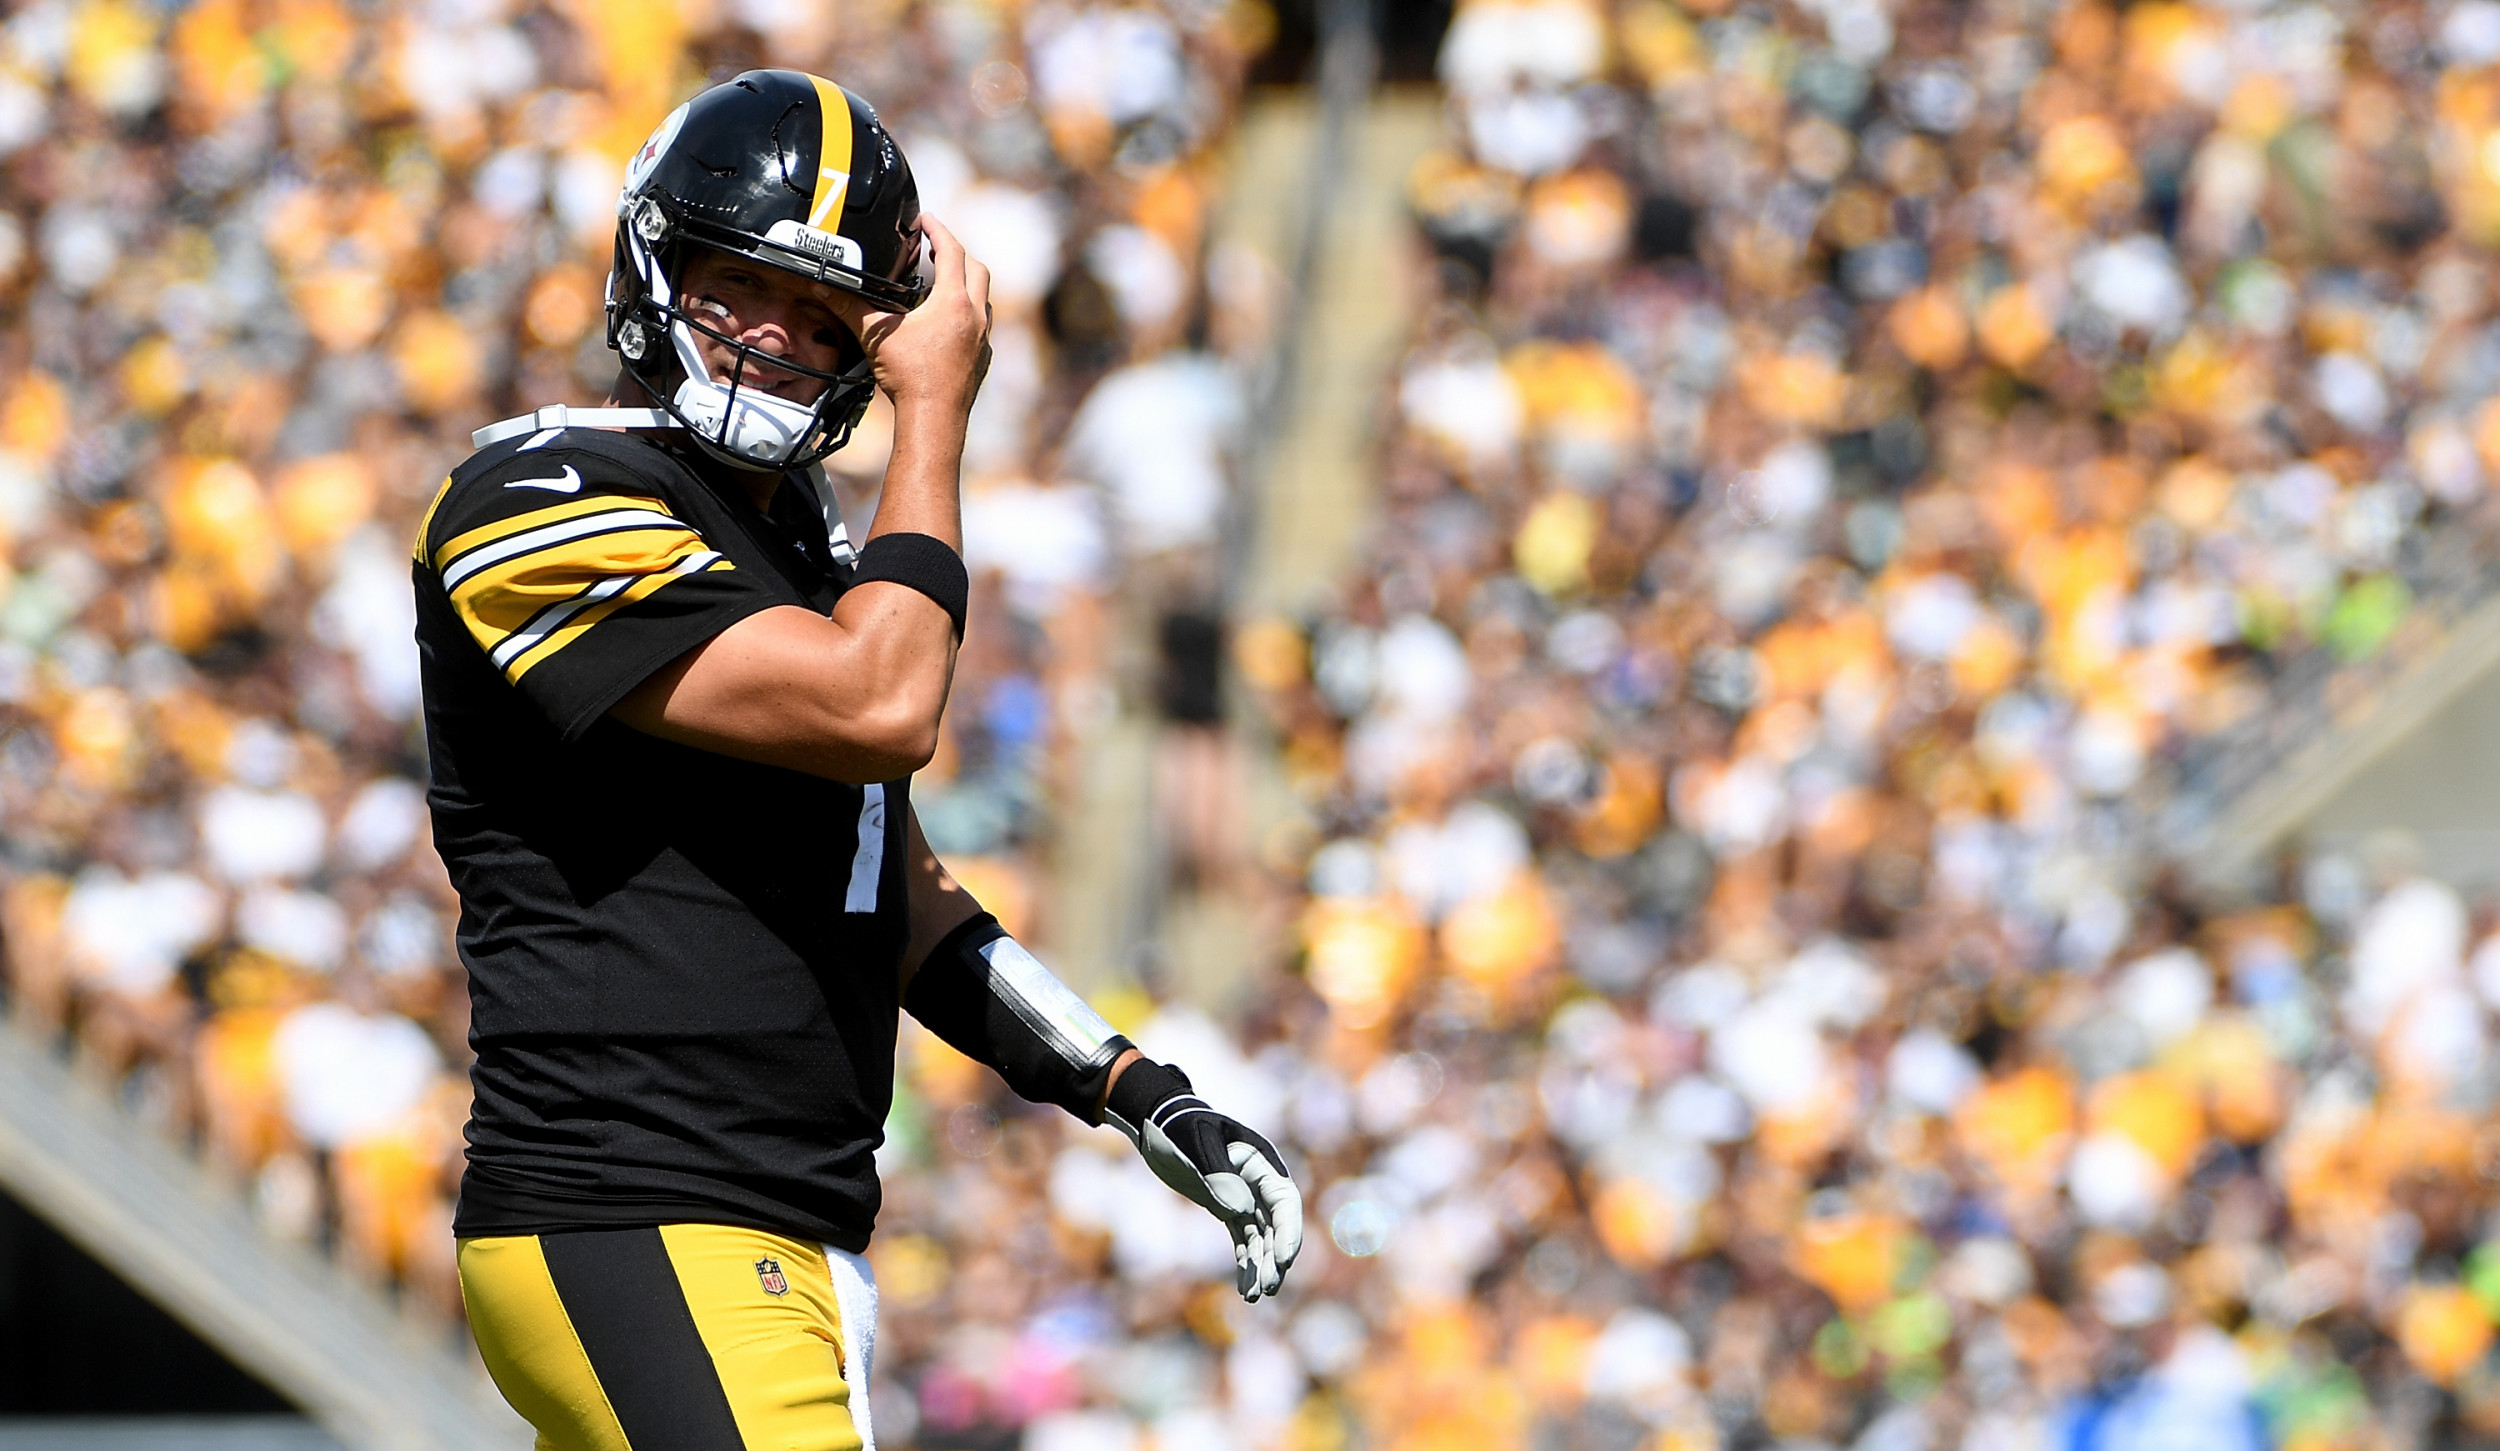 finest selection 660d1 9d934 Ben Roethlisberger Injury News: Will Pittsburgh Steelers ...